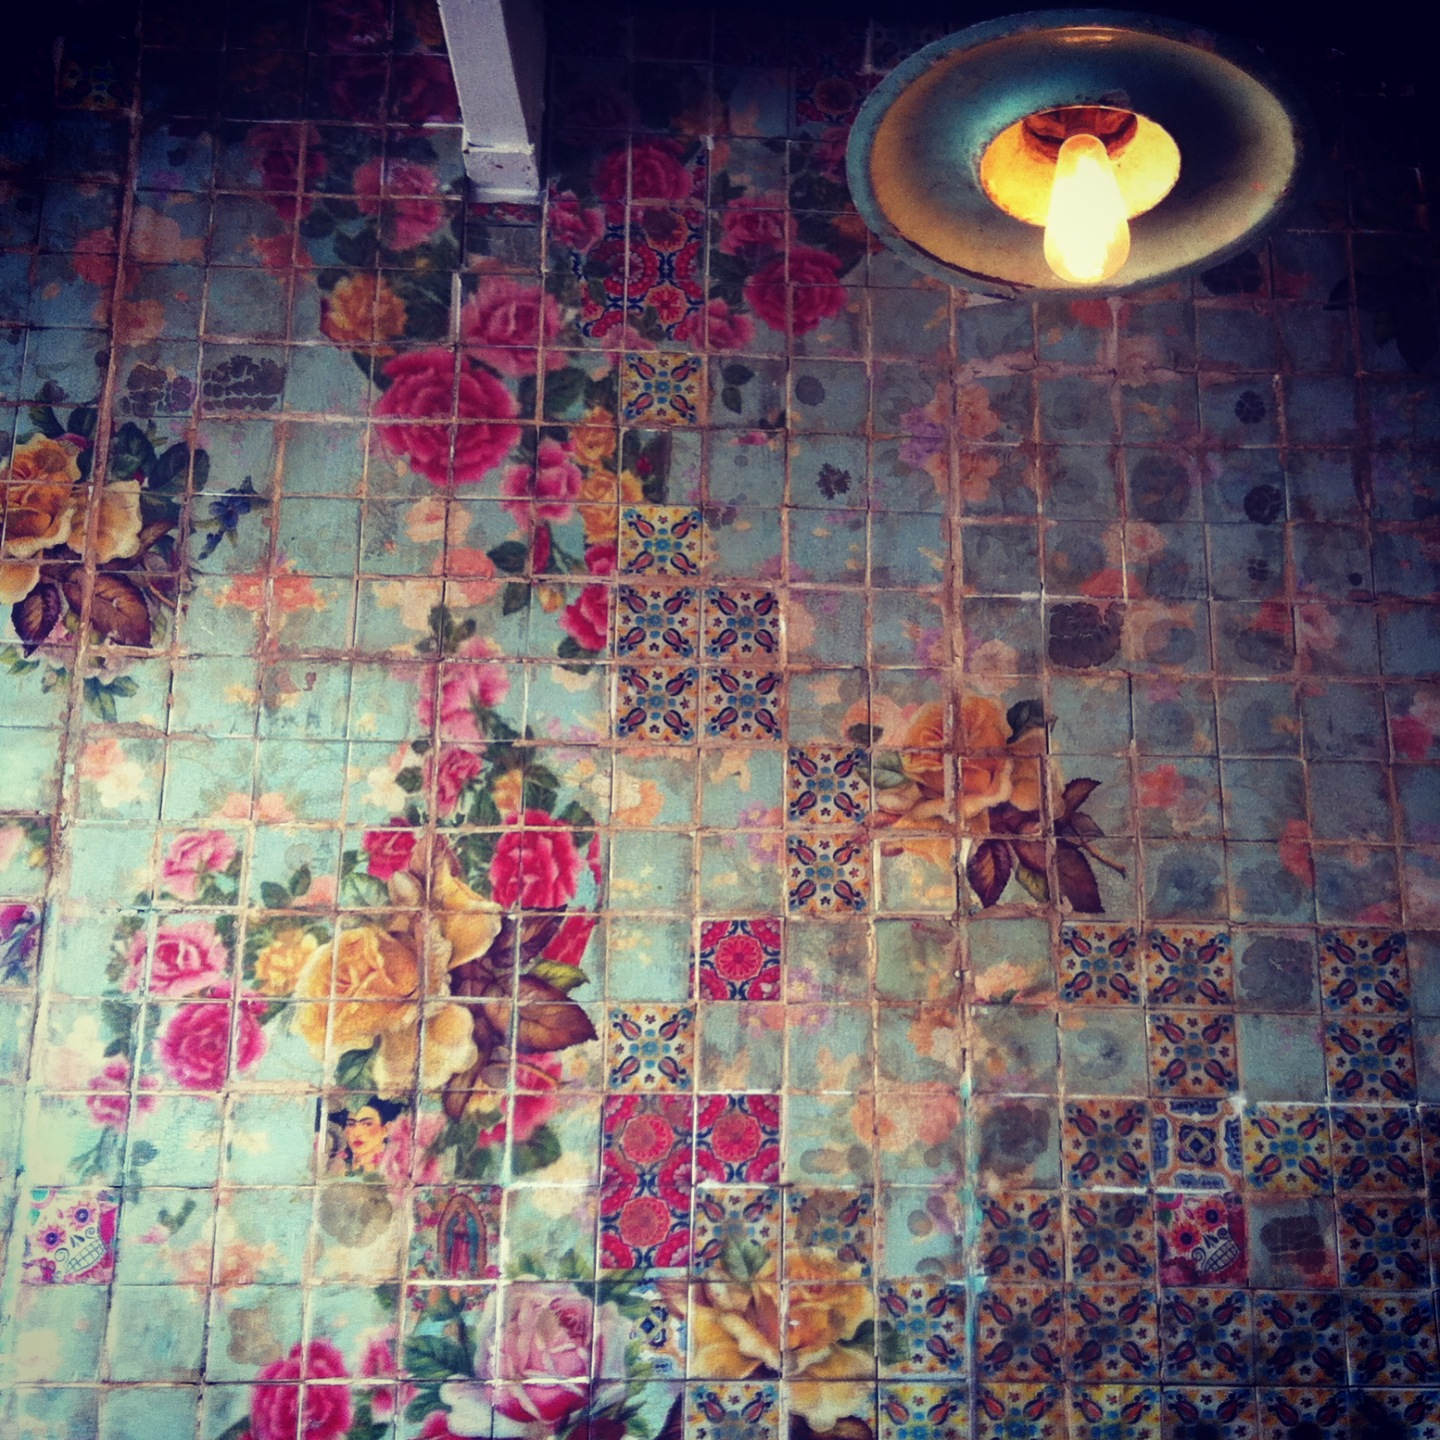 Floral-tile-pattern-not-sure-it-is-in-the-kitchen-or-bathroom-but-it-is-lovely-wallpaper-wp5206584